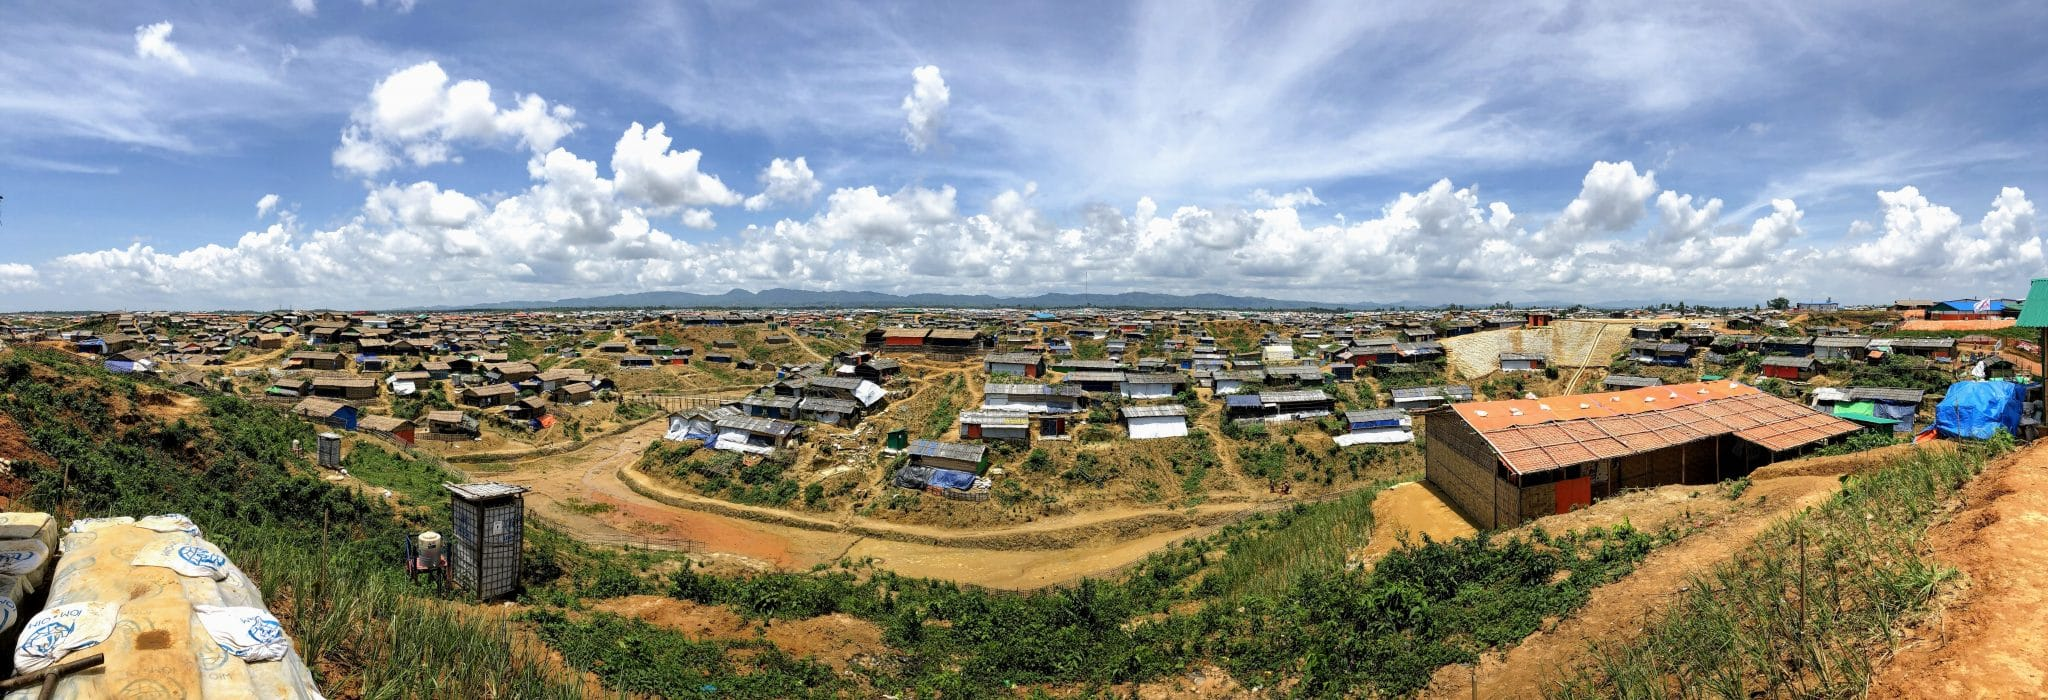 Rohingya Camp | Photo: Mohammad Tauheed/Flickr